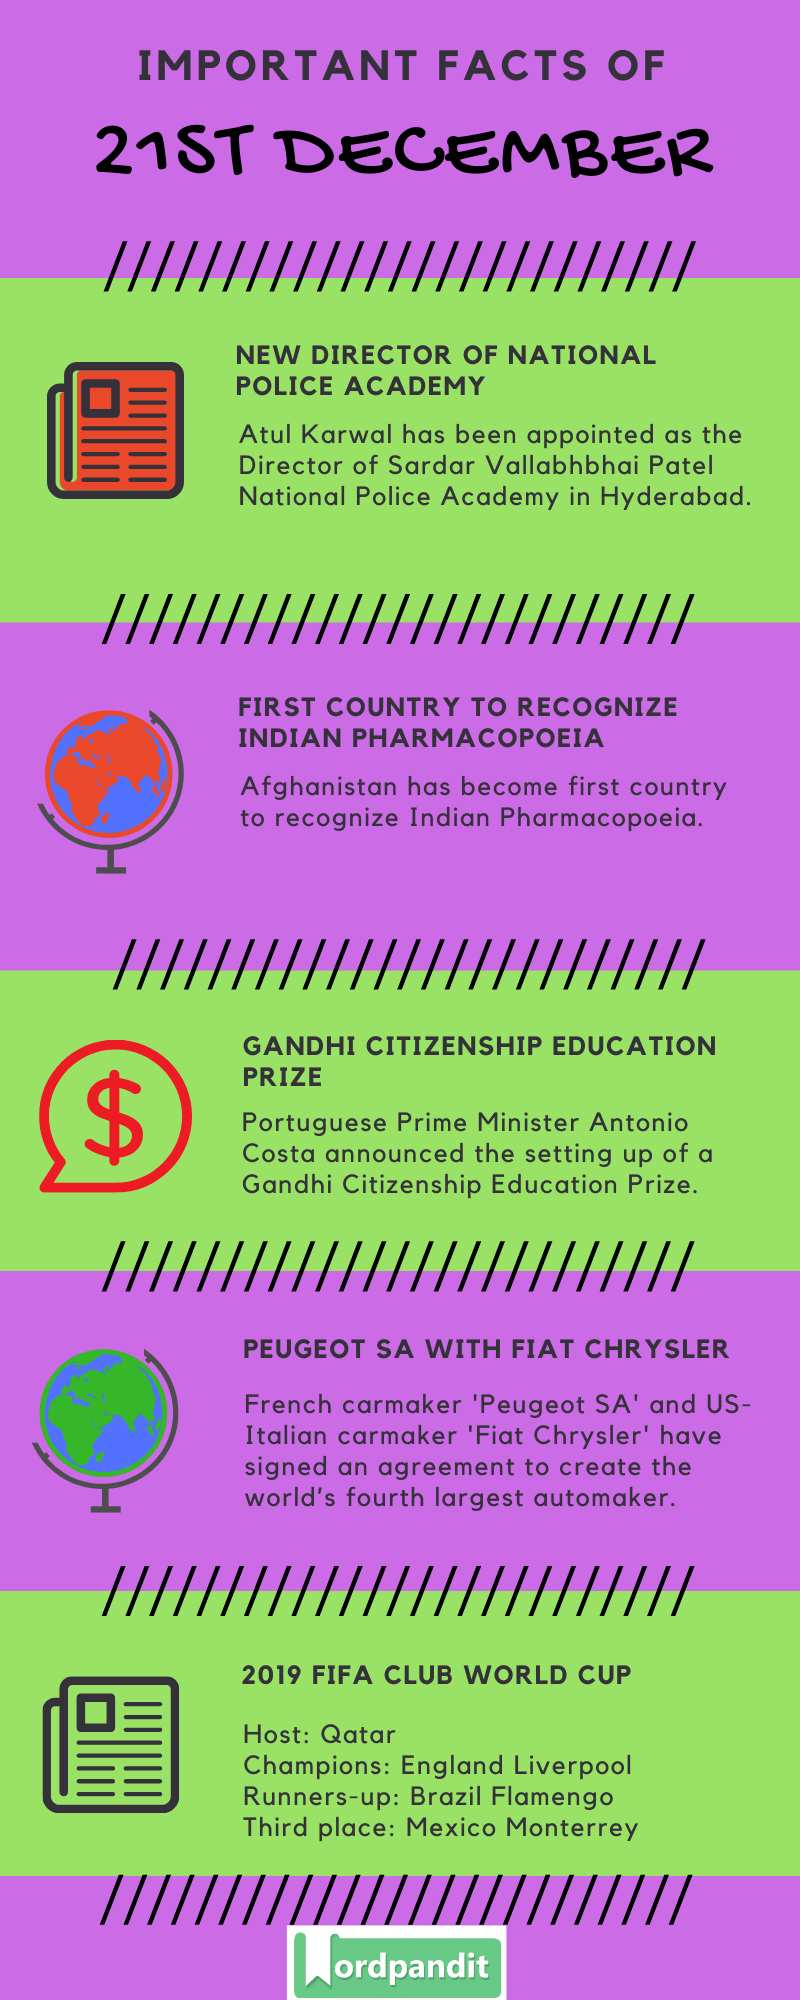 Daily Current Affairs 21 December 2019 Current Affairs Quiz 21 December 2019 Current Affairs Infographic